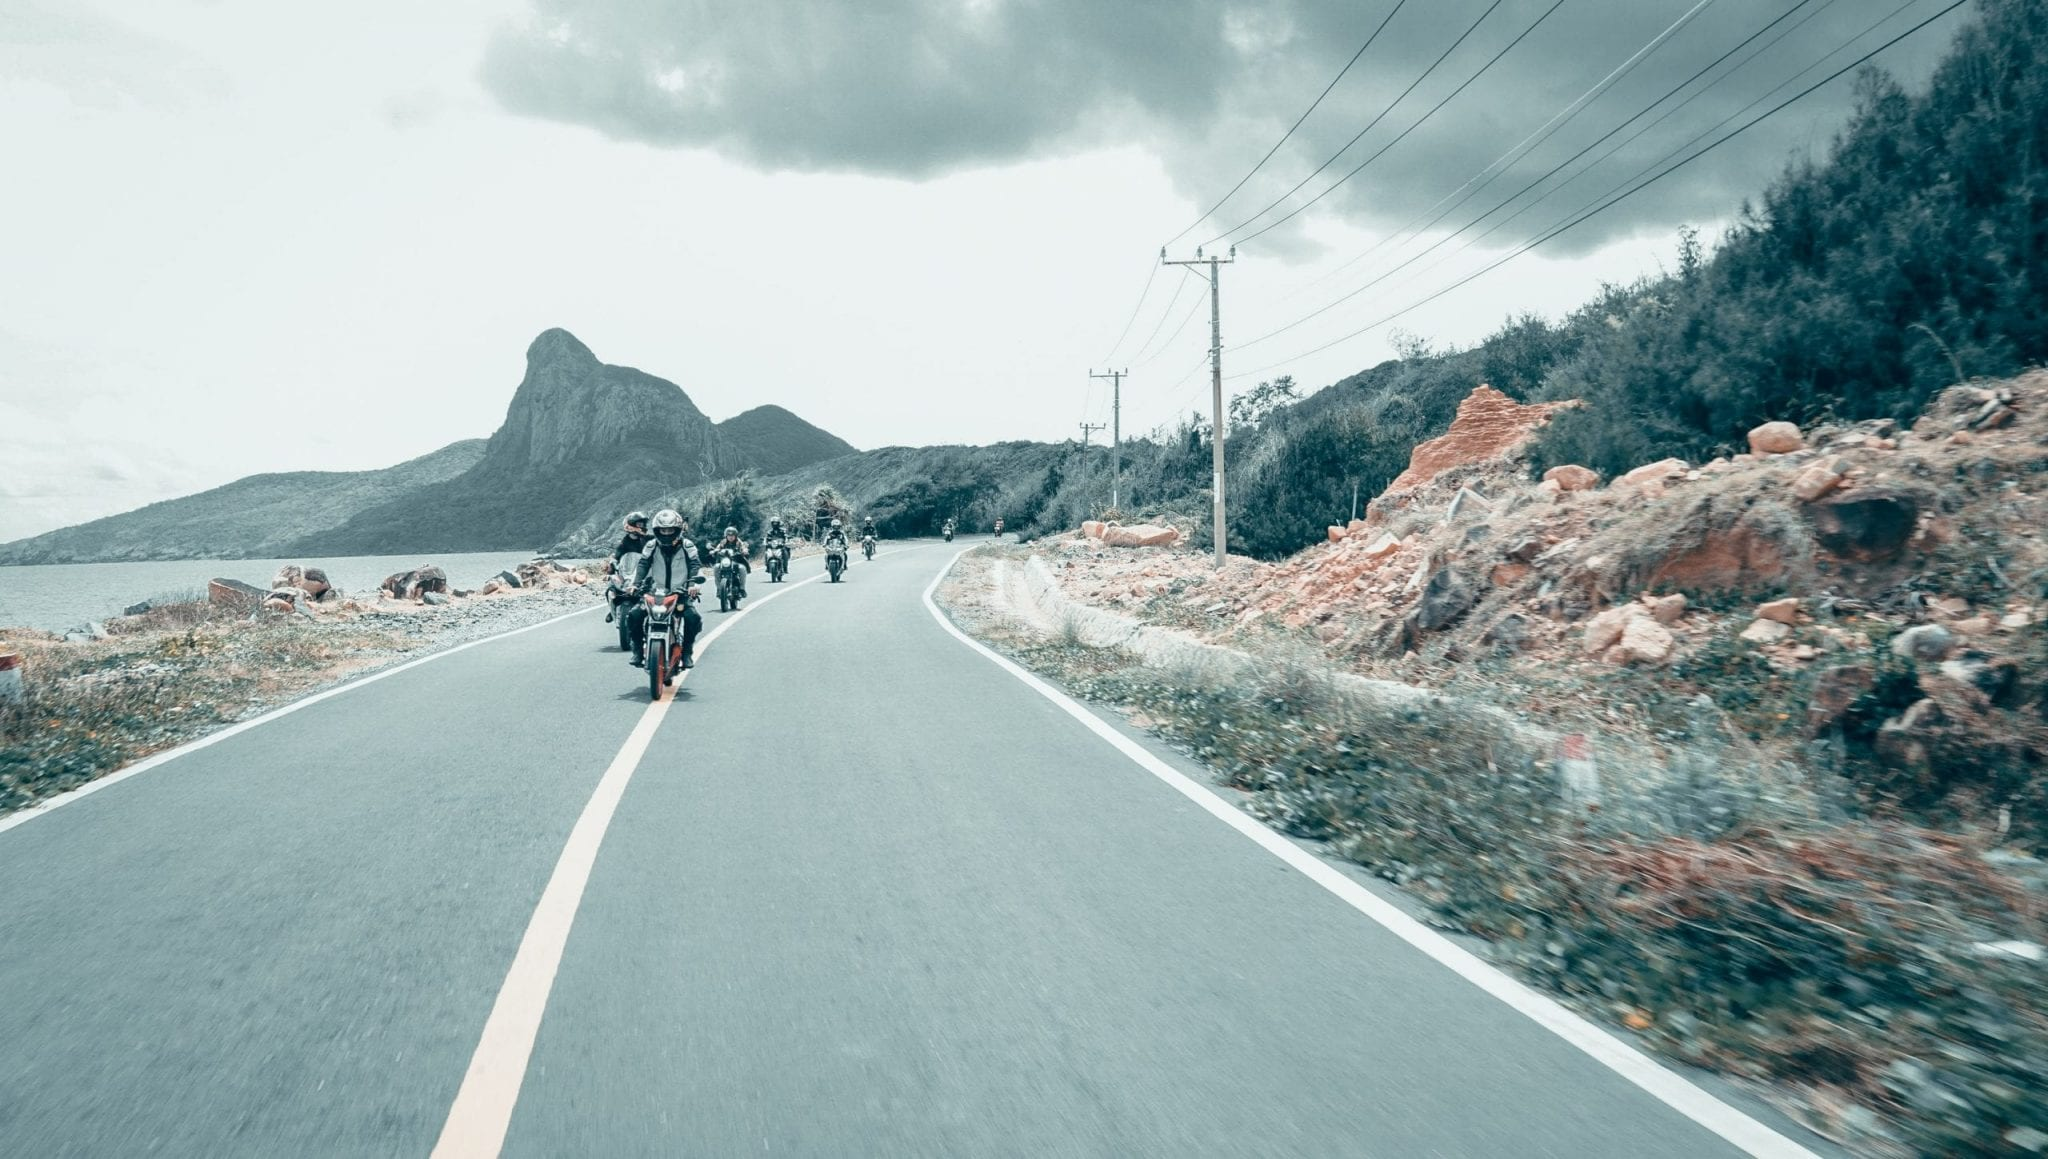 a group of people are riding bikes together at Con dao island, Vietnam